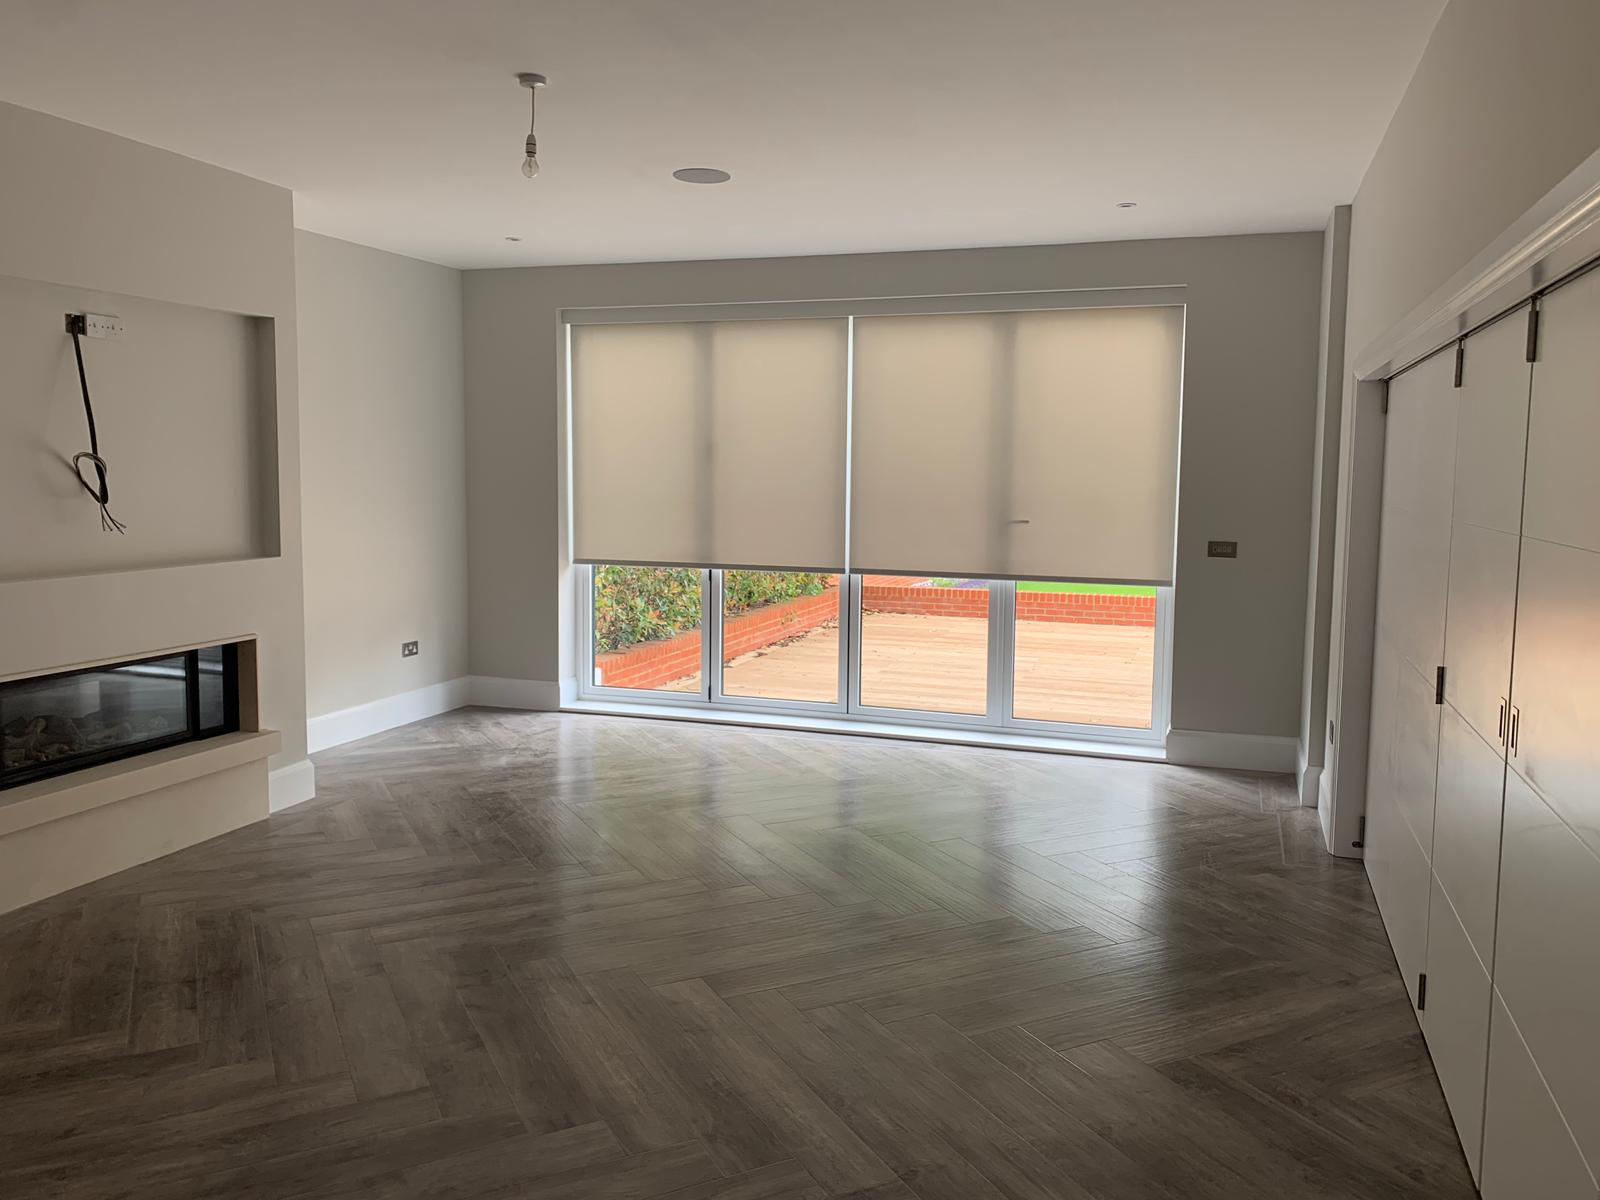 Qmotion Electric Blinds Loughton